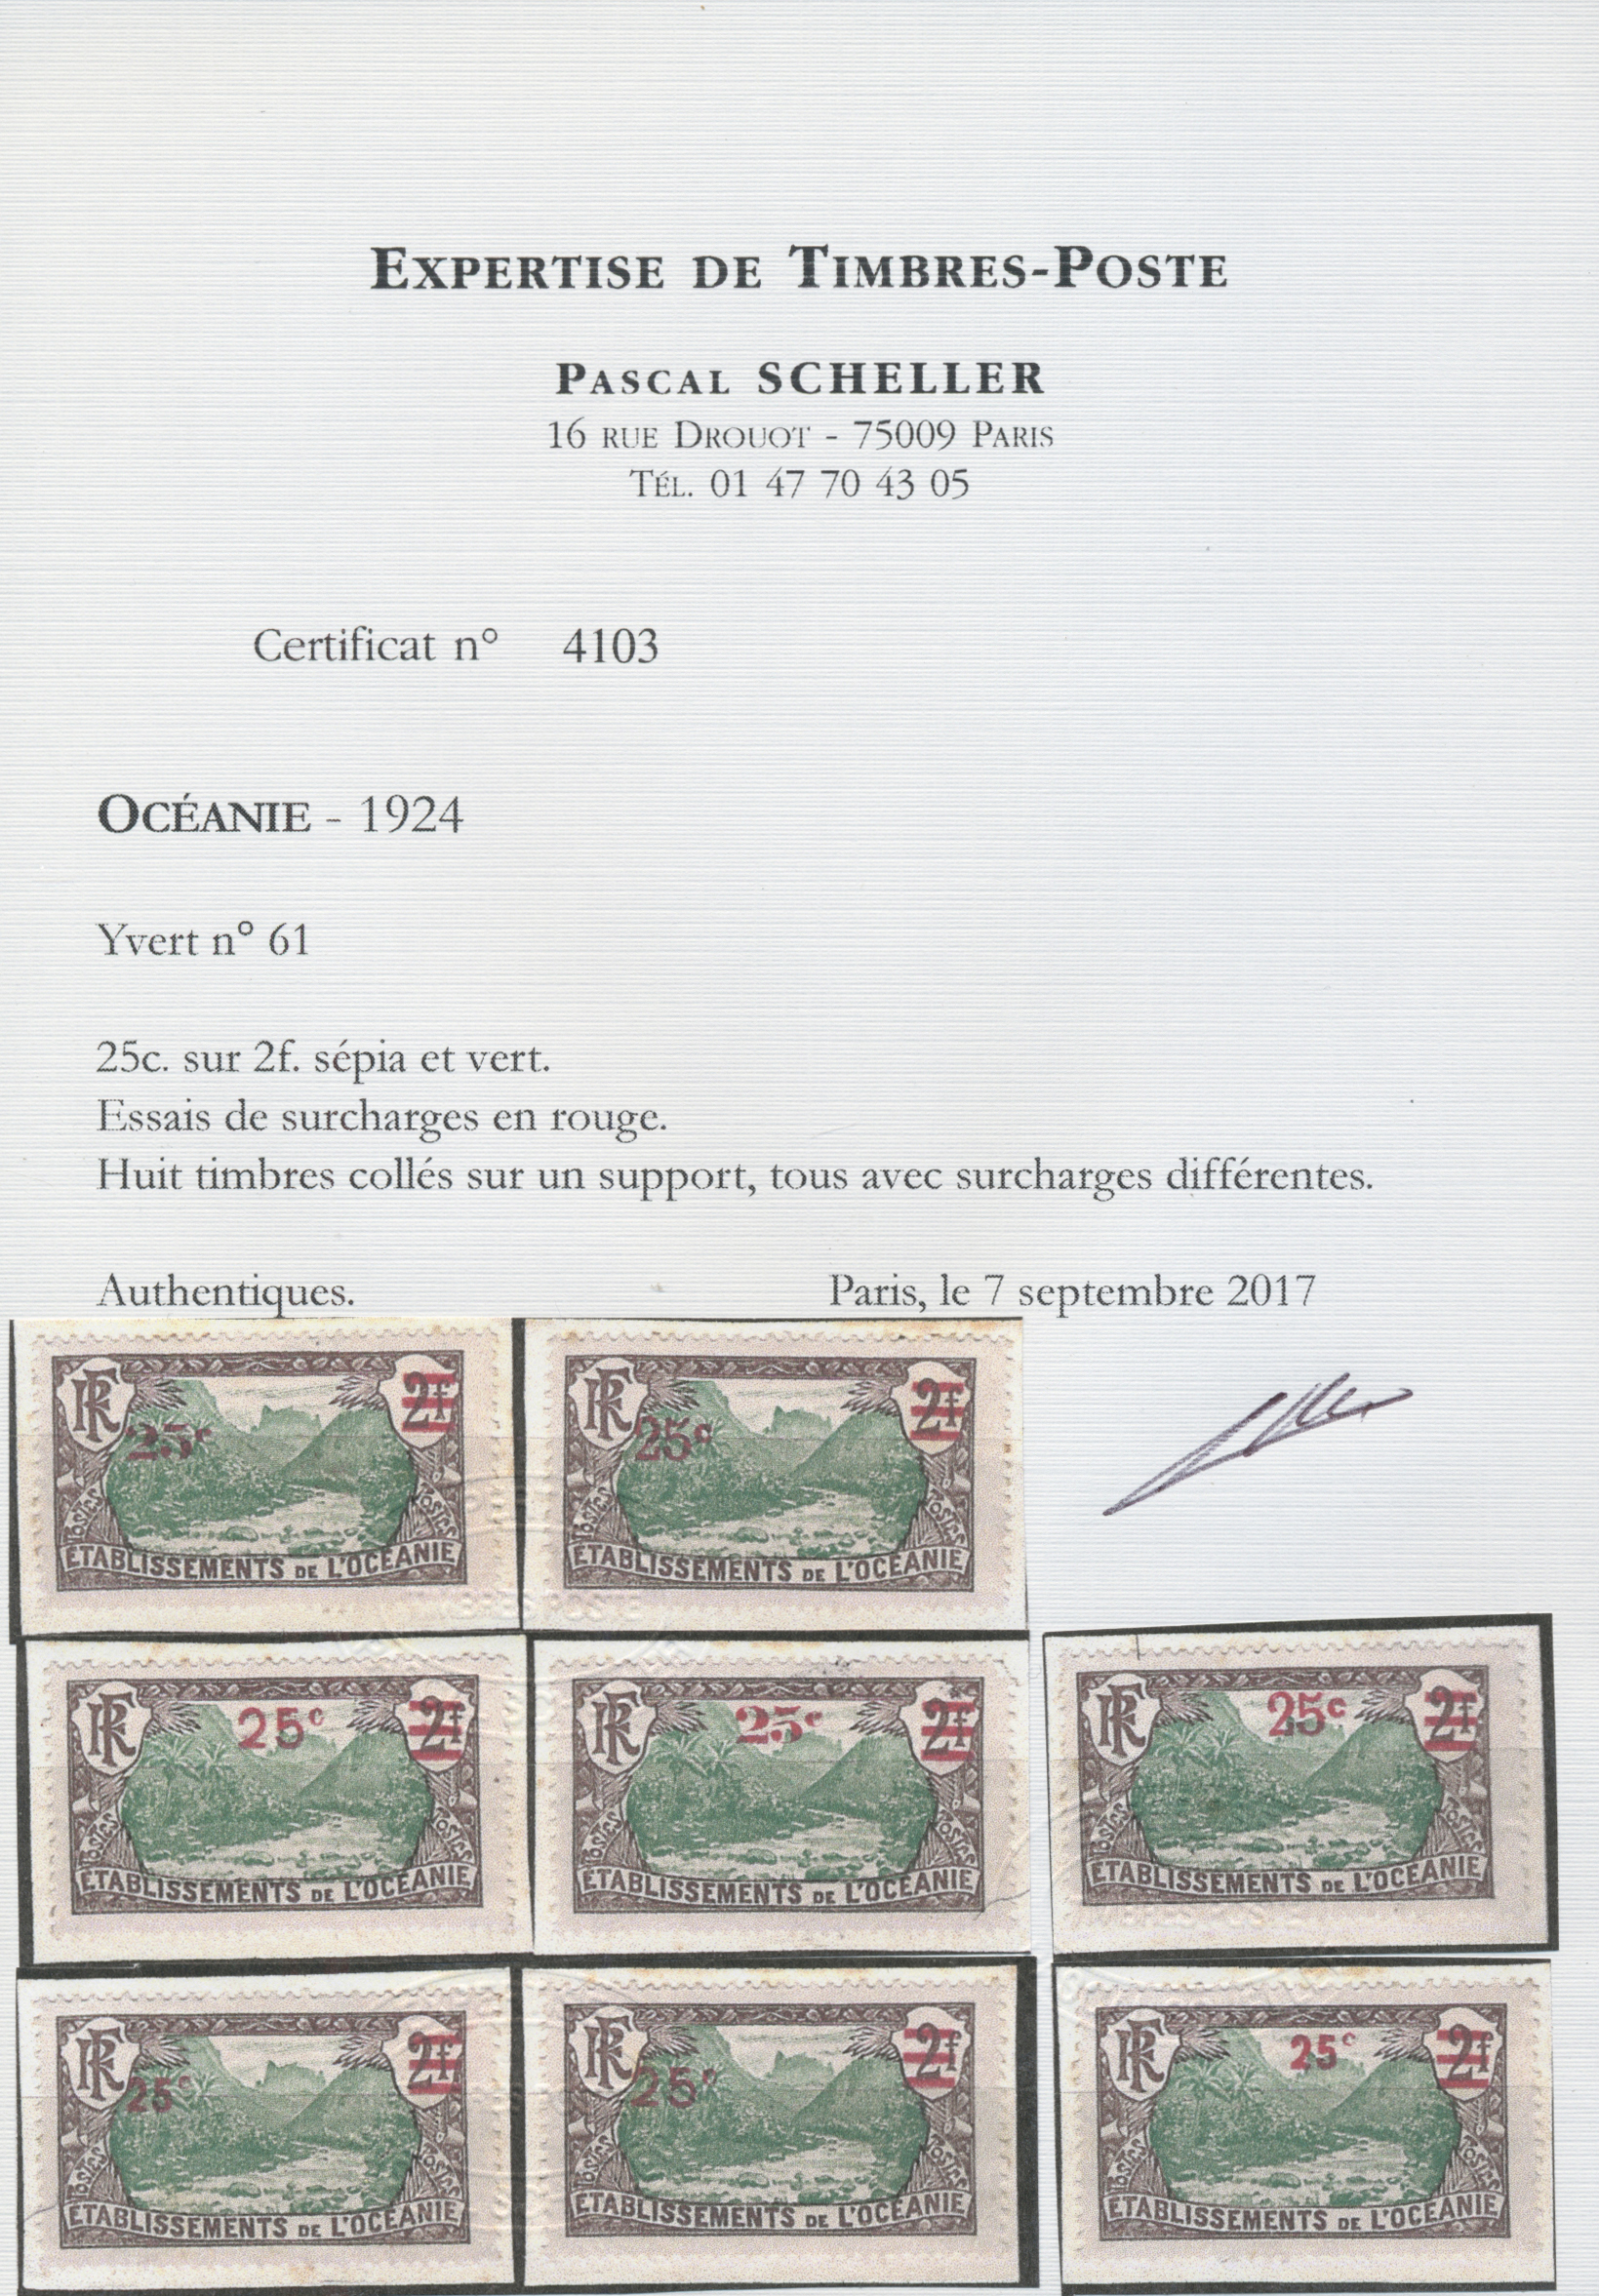 Lot 13745 - französisch-ozeanien  -  Auktionshaus Christoph Gärtner GmbH & Co. KG Single lots Philately Overseas & Europe. Auction #39 Day 4